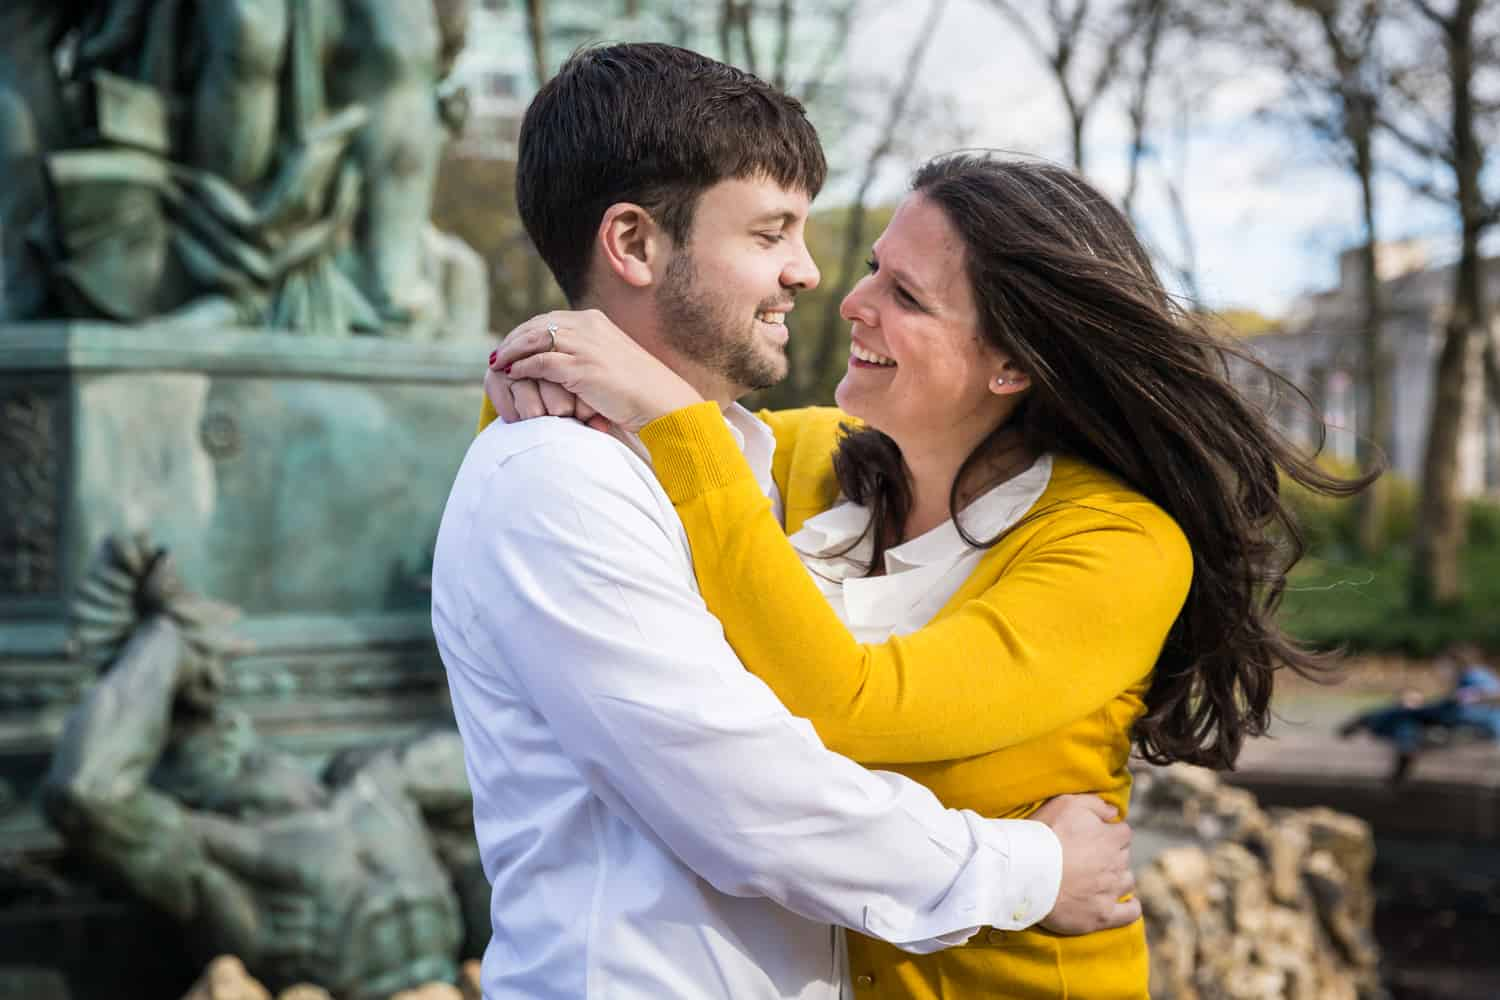 Grand Army Plaza engagement photos of couple hugging